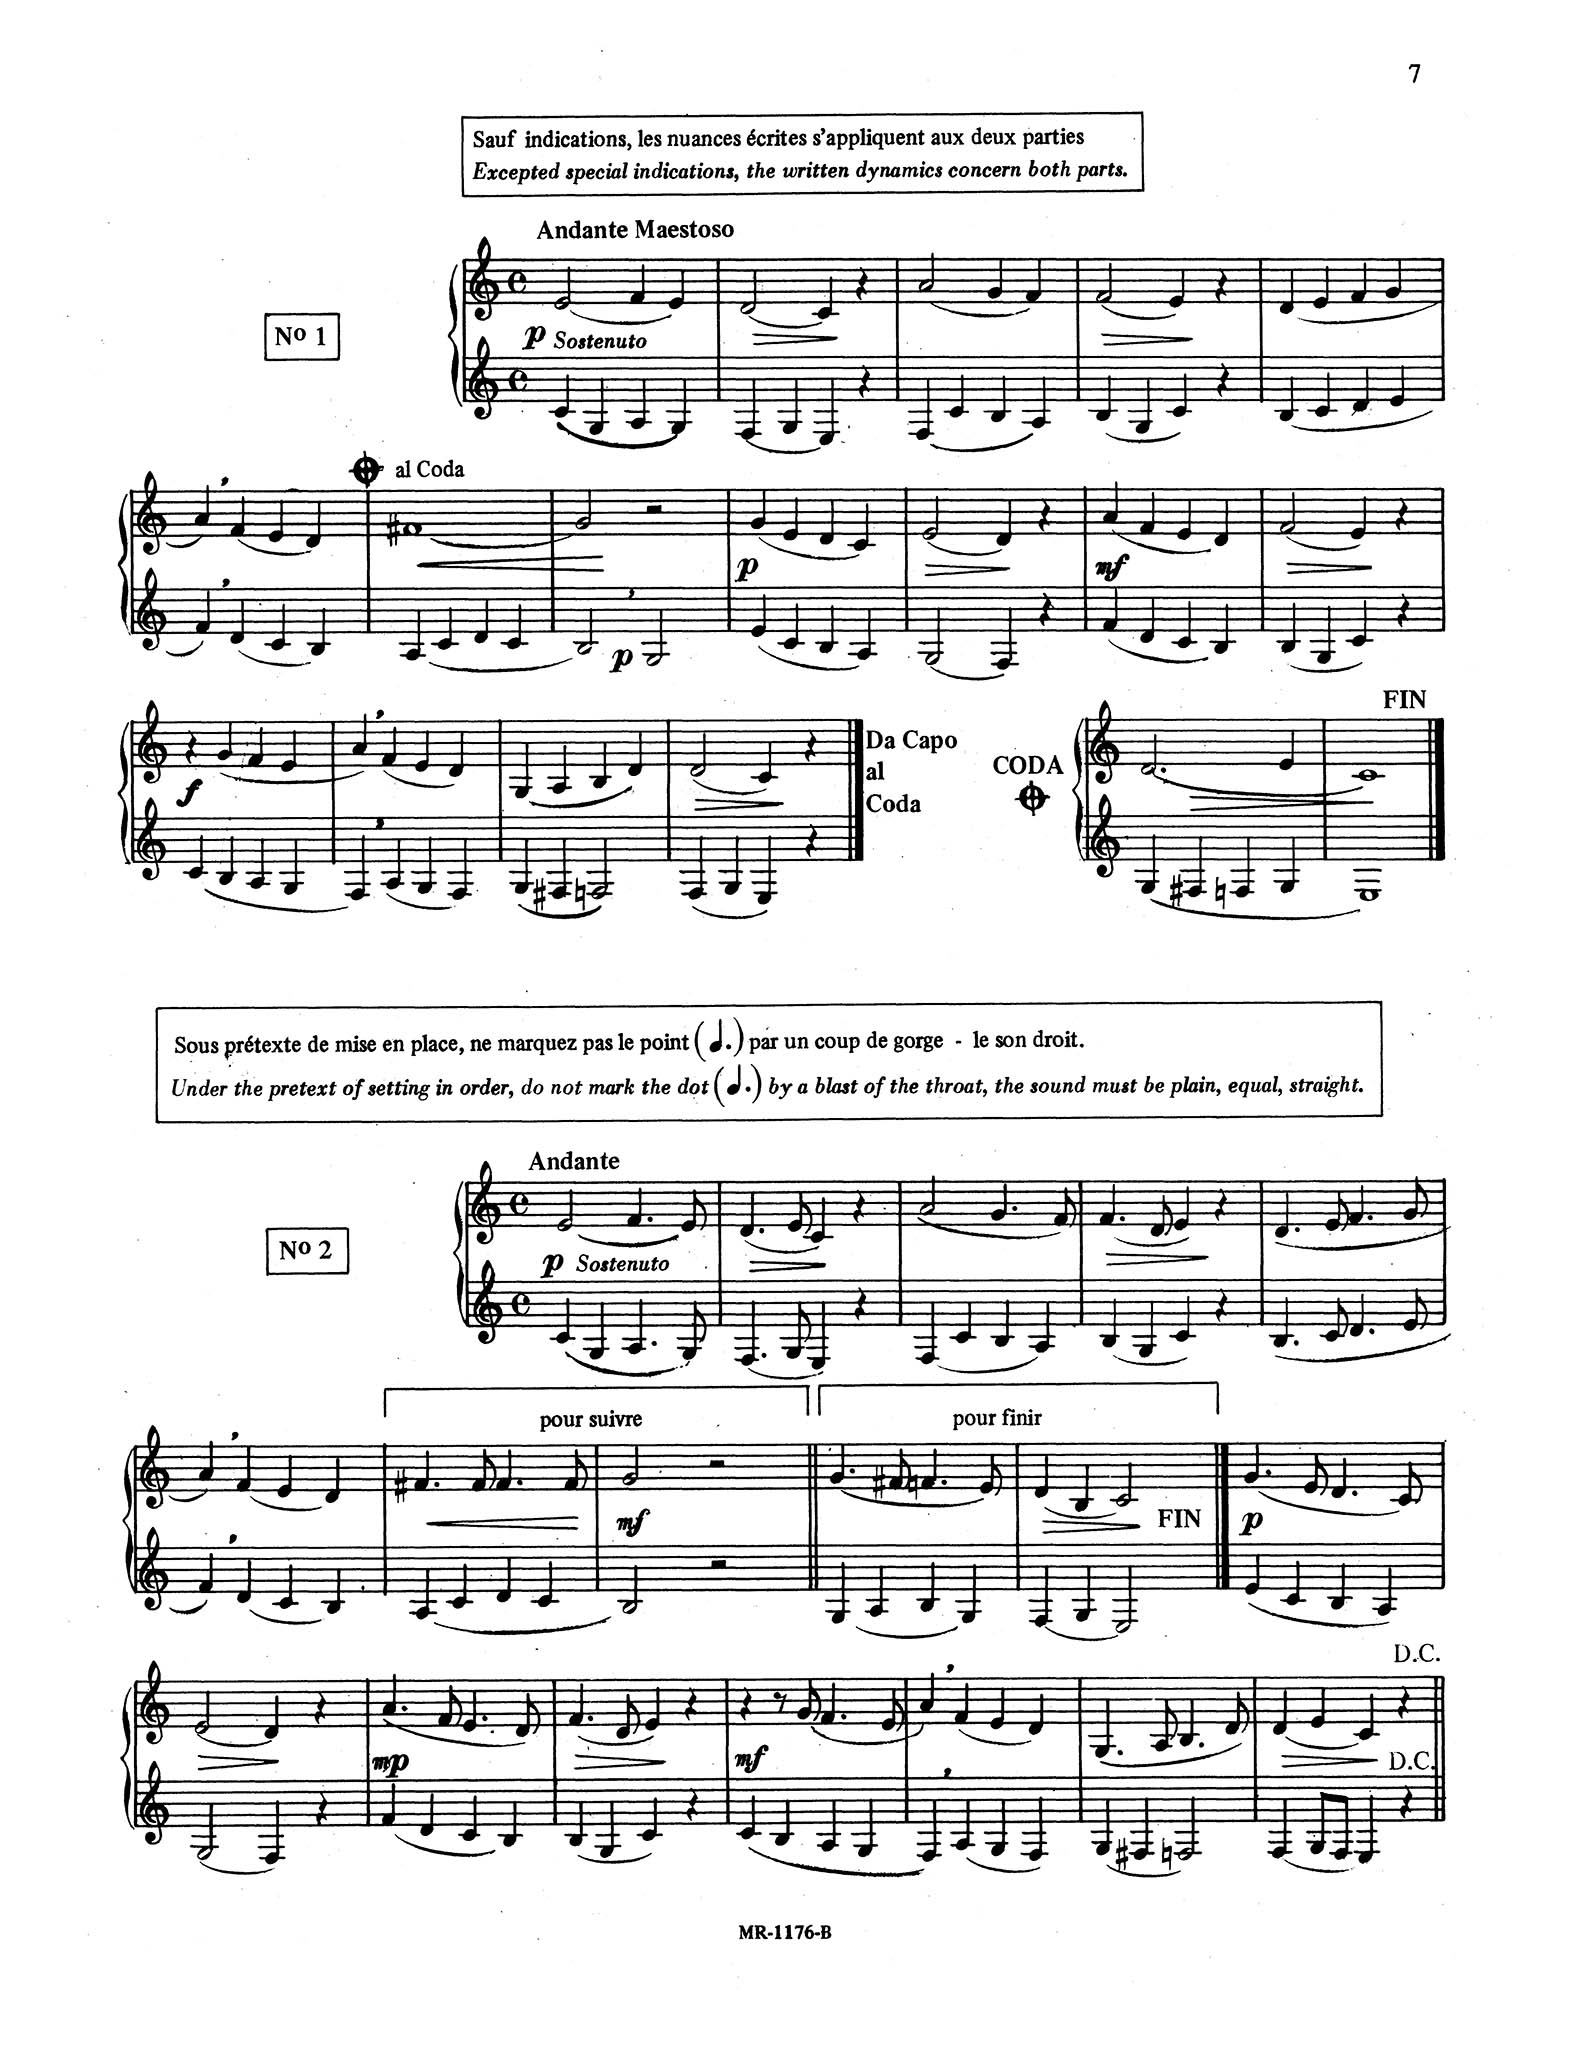 30 Intermediate Studies in Style for Clarinet Page 7